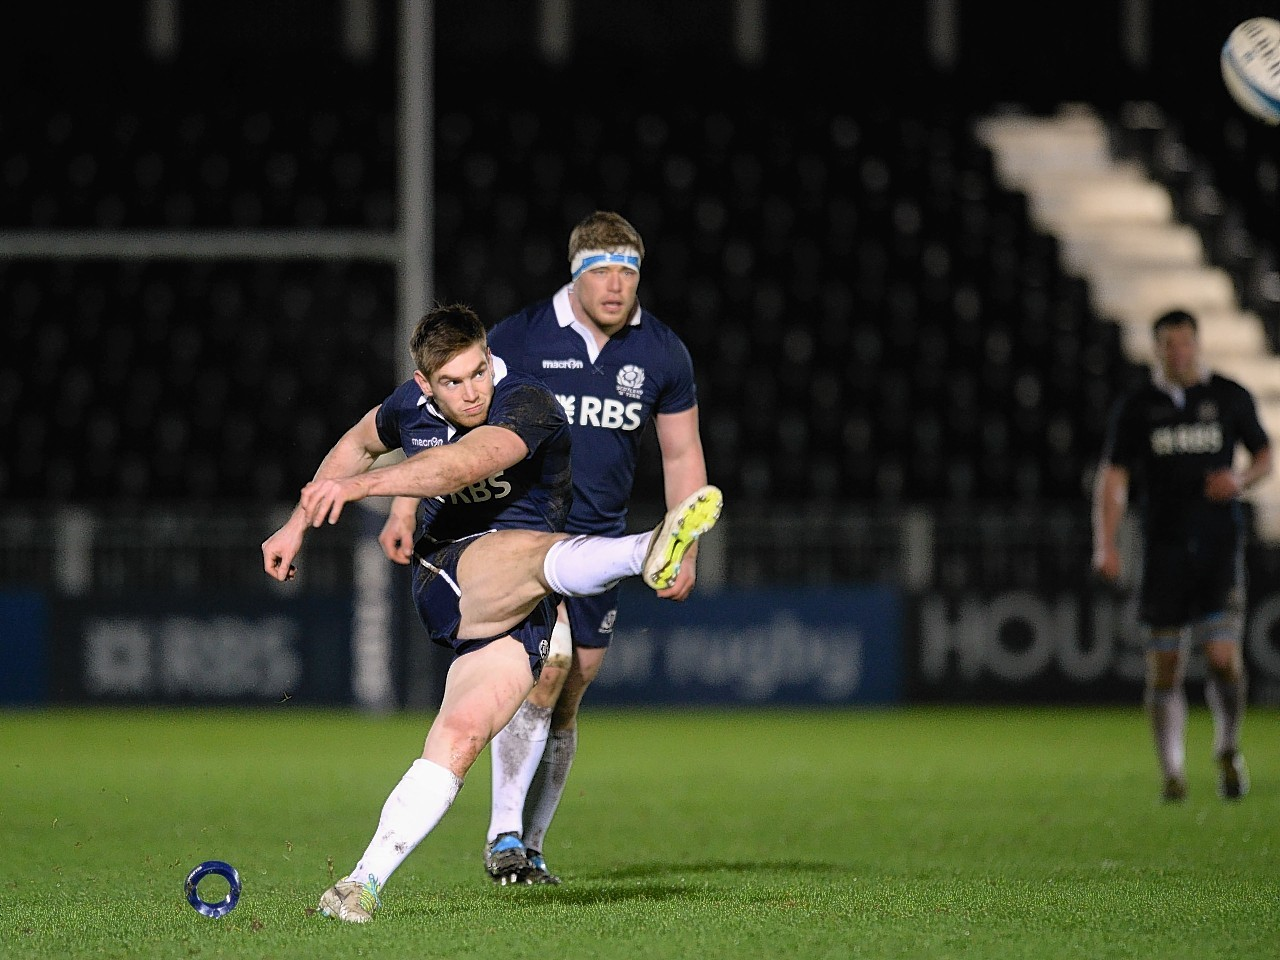 Tom Heathcote kicking for Scotland A